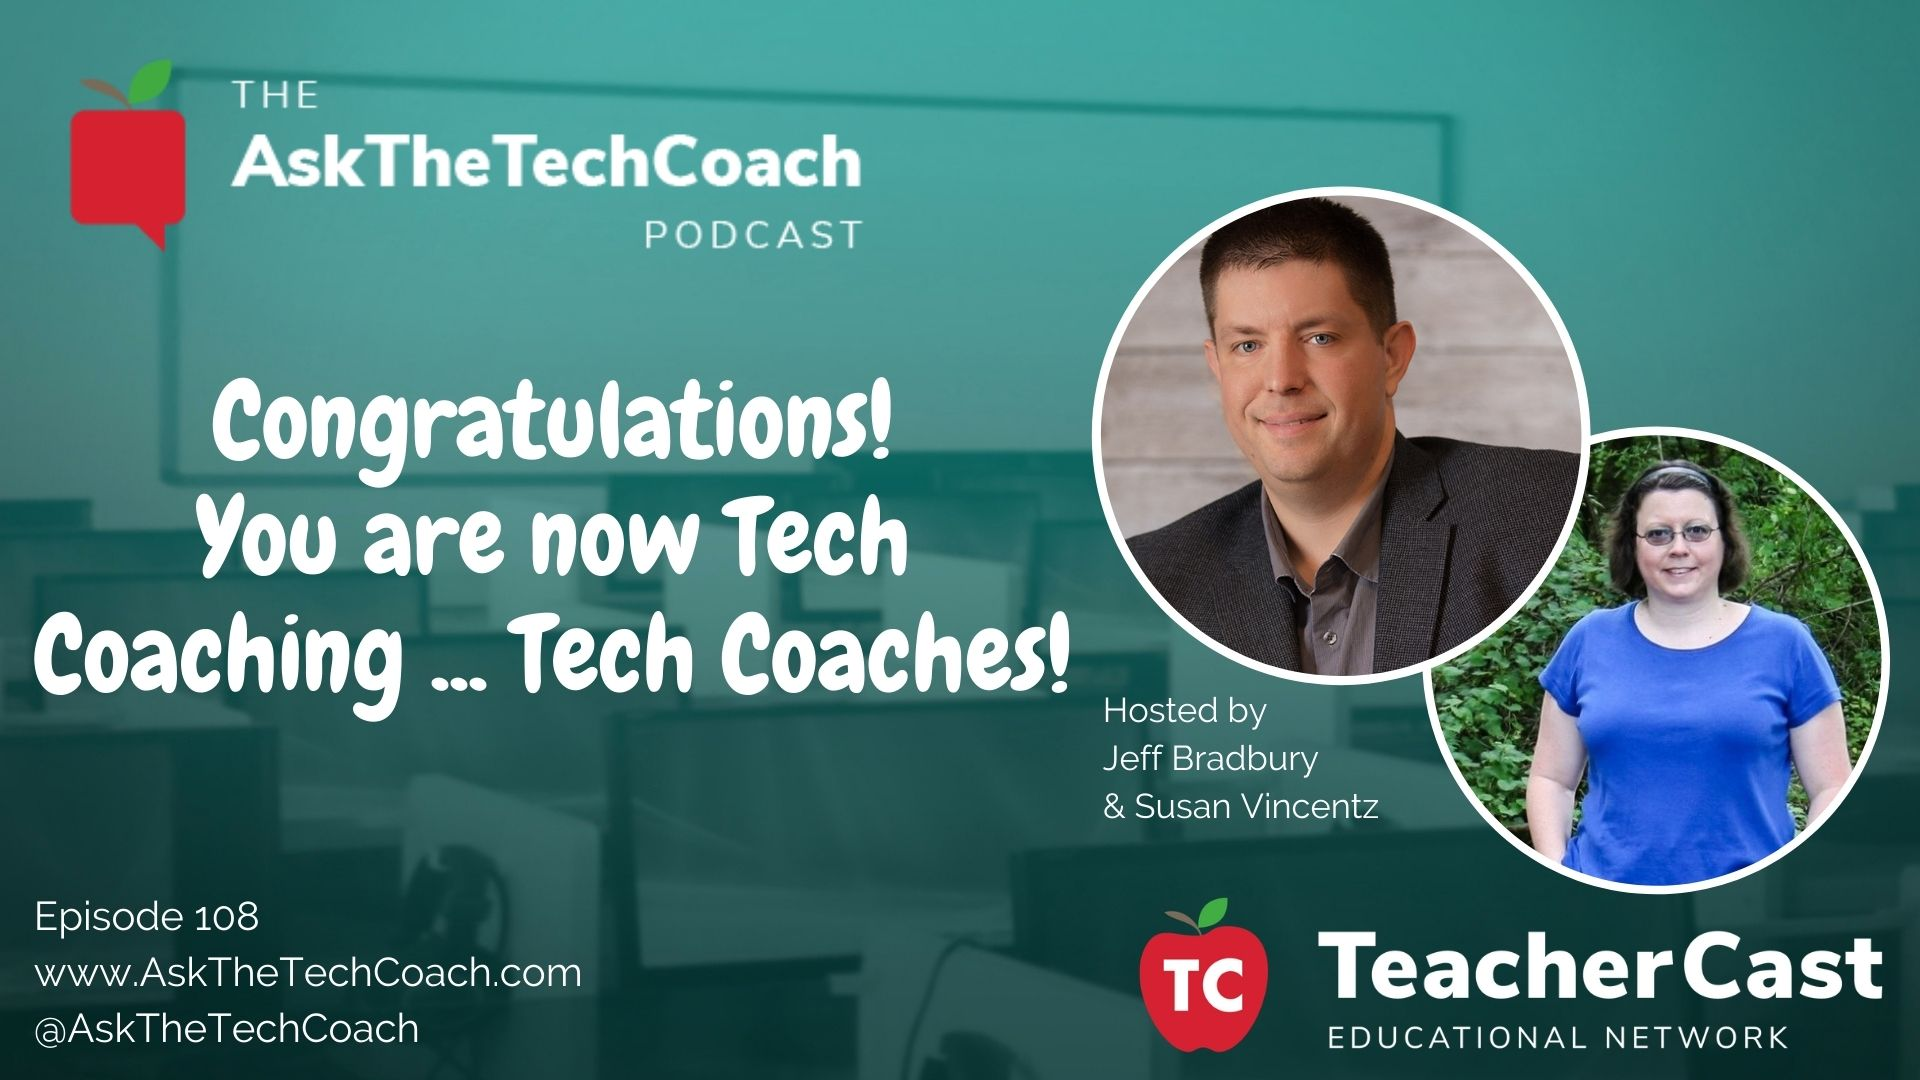 Tech Coaching Tech Coaches